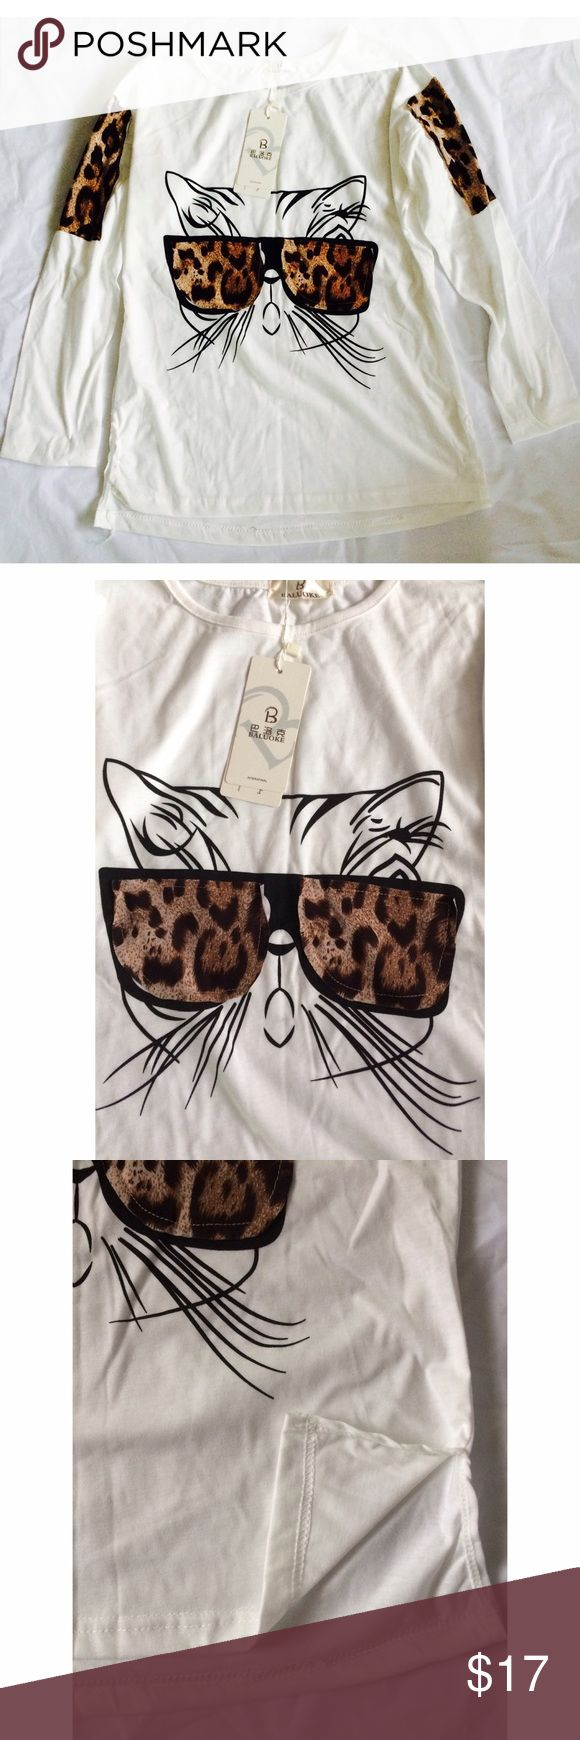 Cute Leopard Print Kitty Top NWT Longer than 3/4 Sleeve. Cute Leopard Print Top, slightly sheer not very, sides have small slits.  Medium/Small depending if your chest is bigger. Korean Tops Tees - Short Sleeve